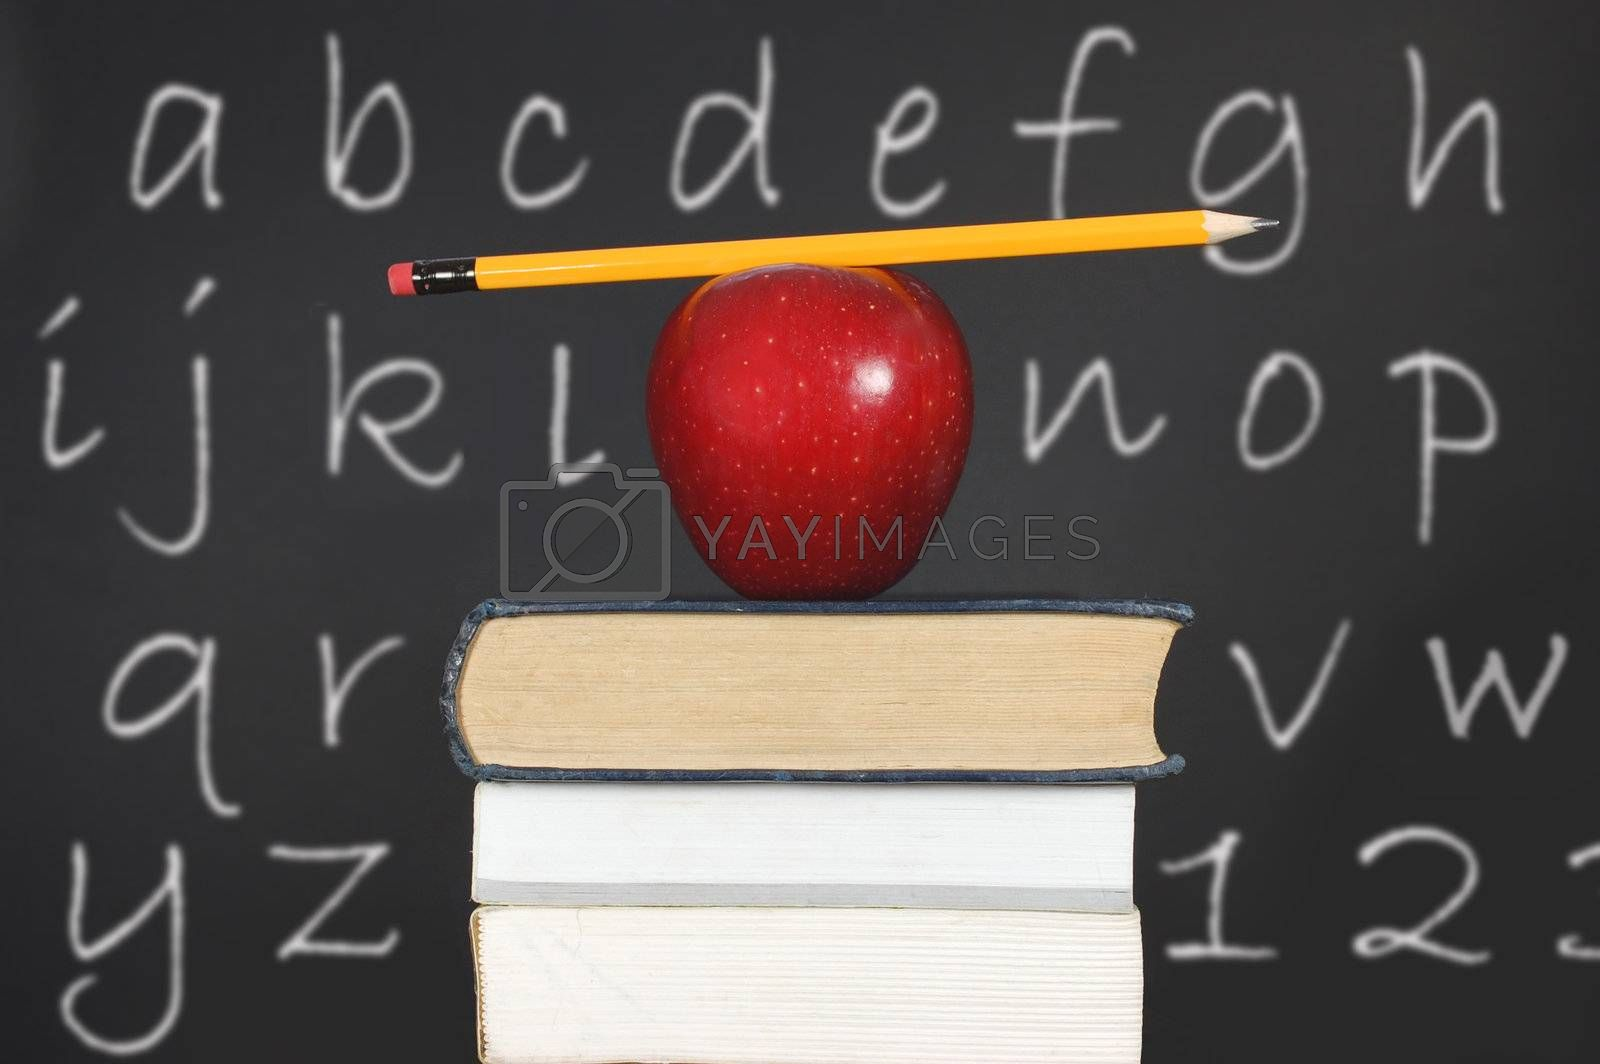 Pencil balancing on an apple and a stack of books